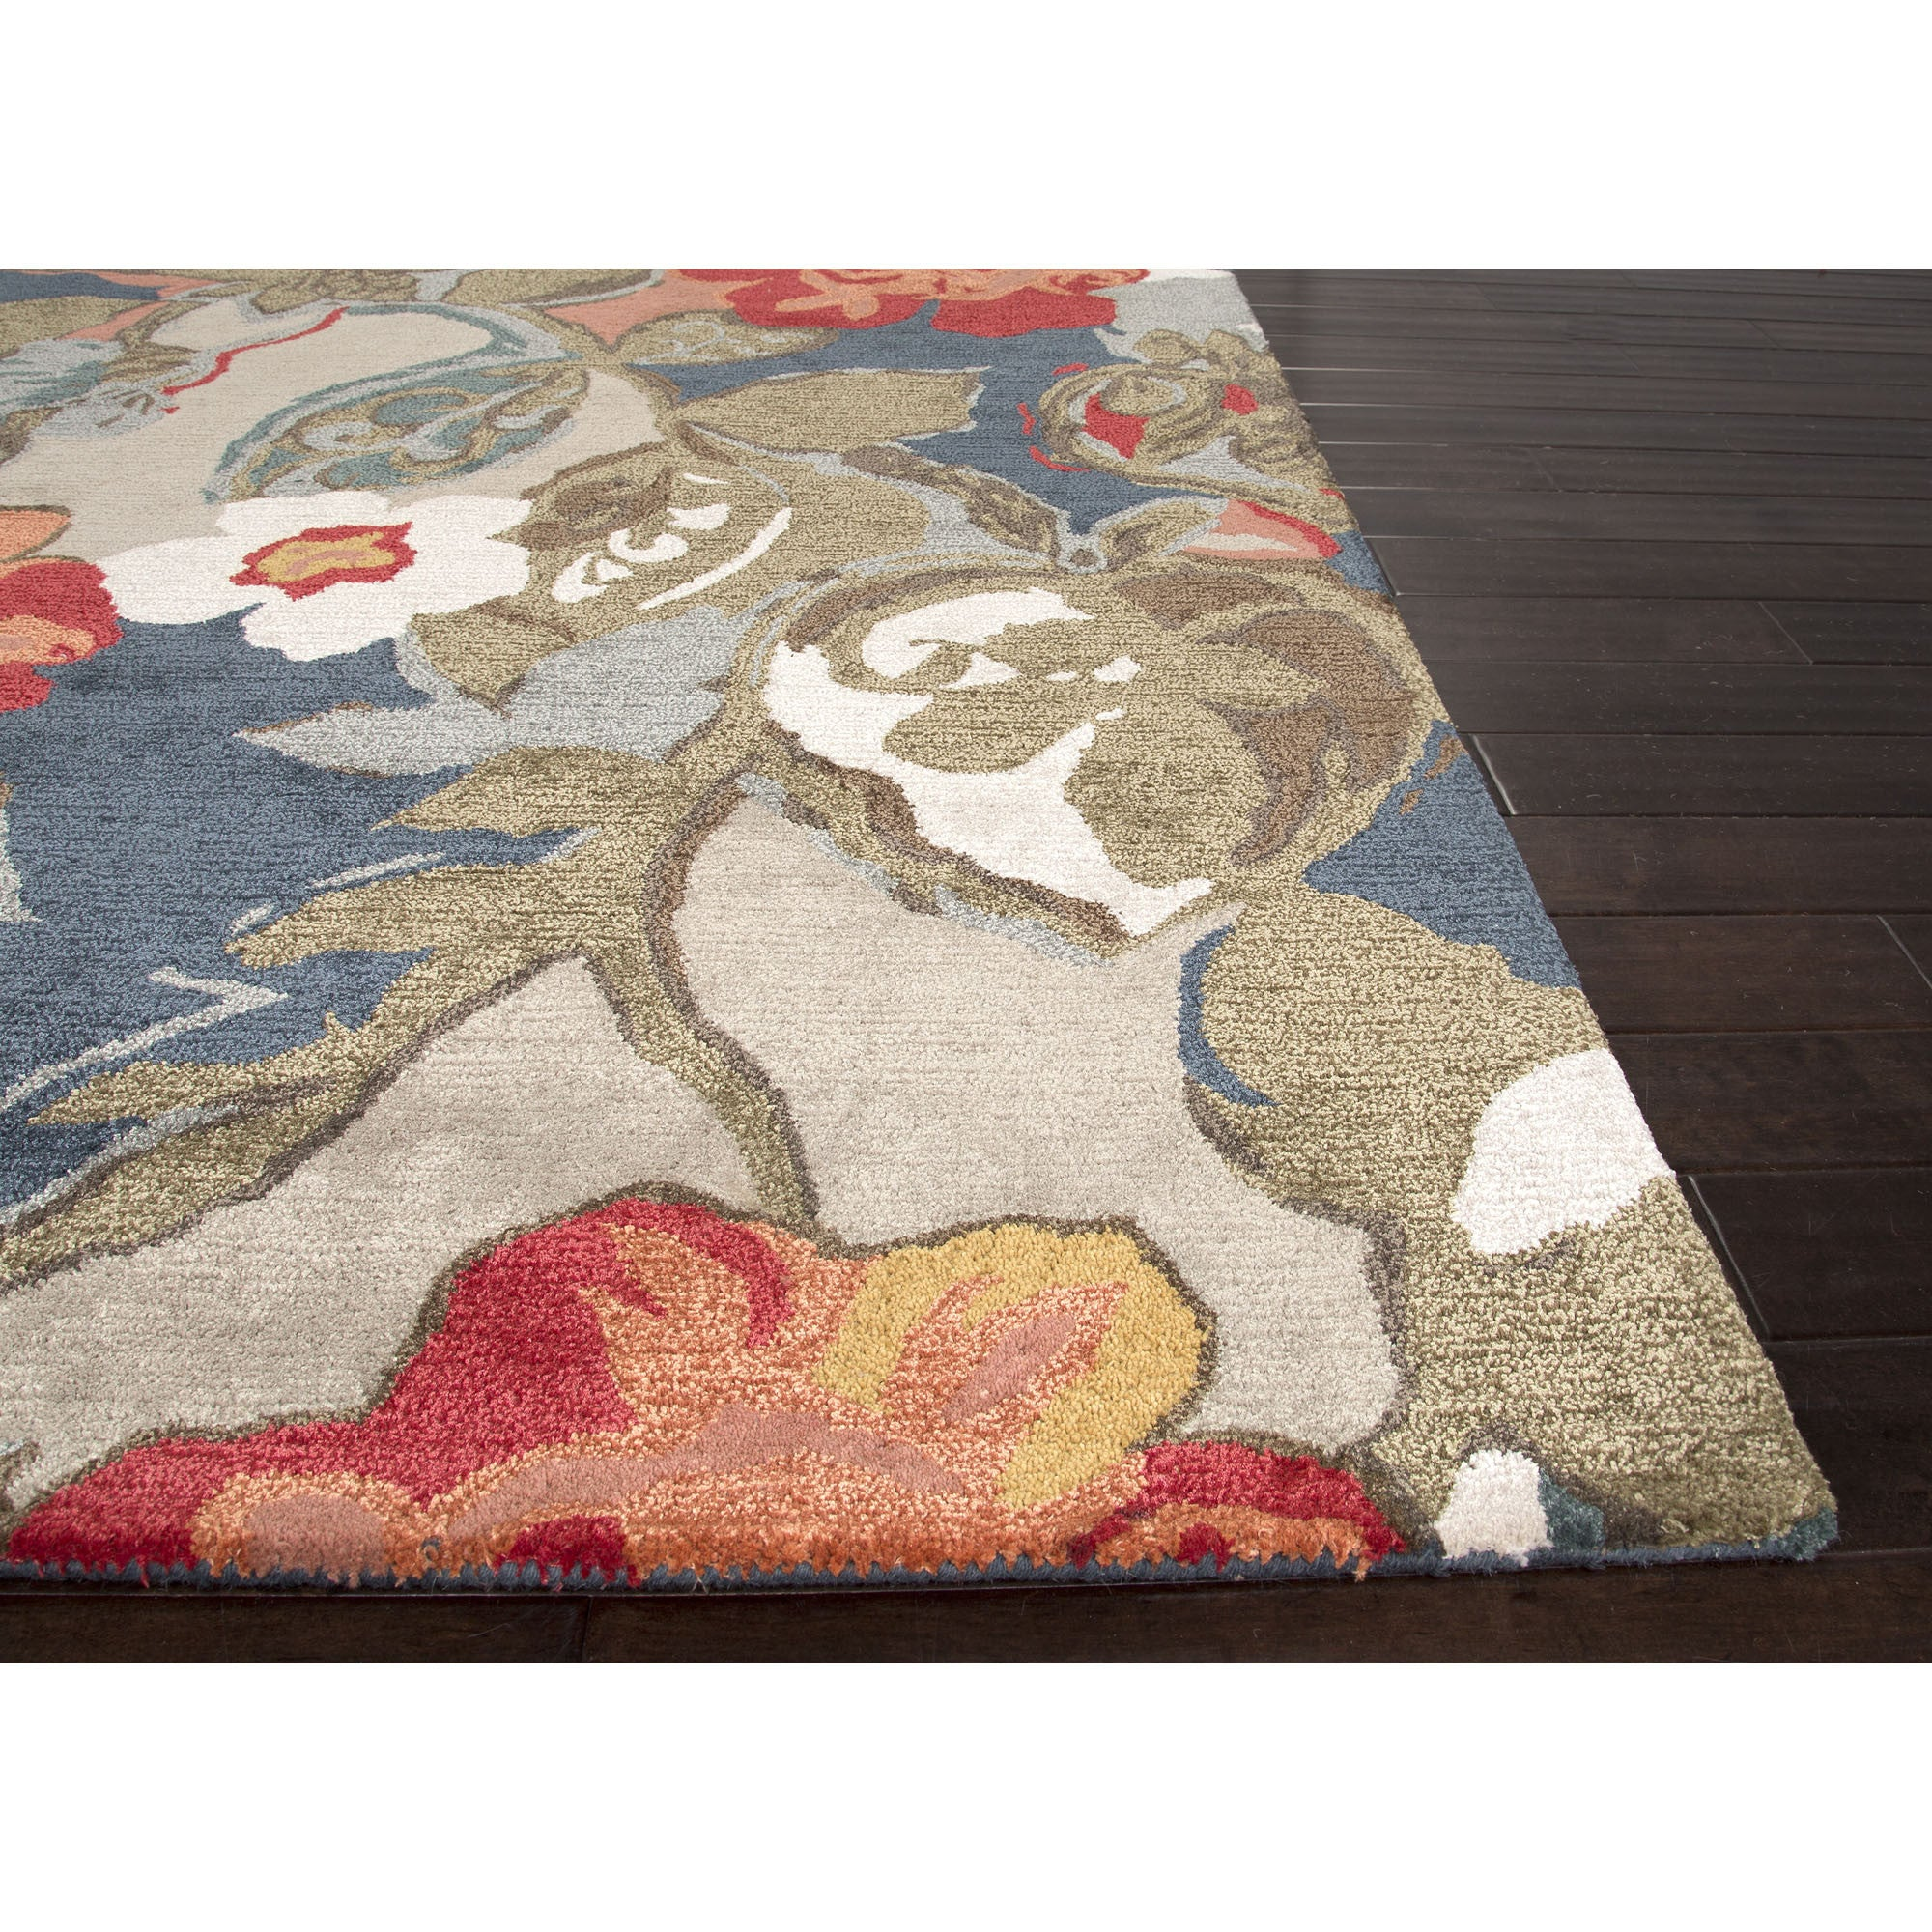 Jaipur rugs modern floral pattern blue red wool and art for Red area rugs contemporary